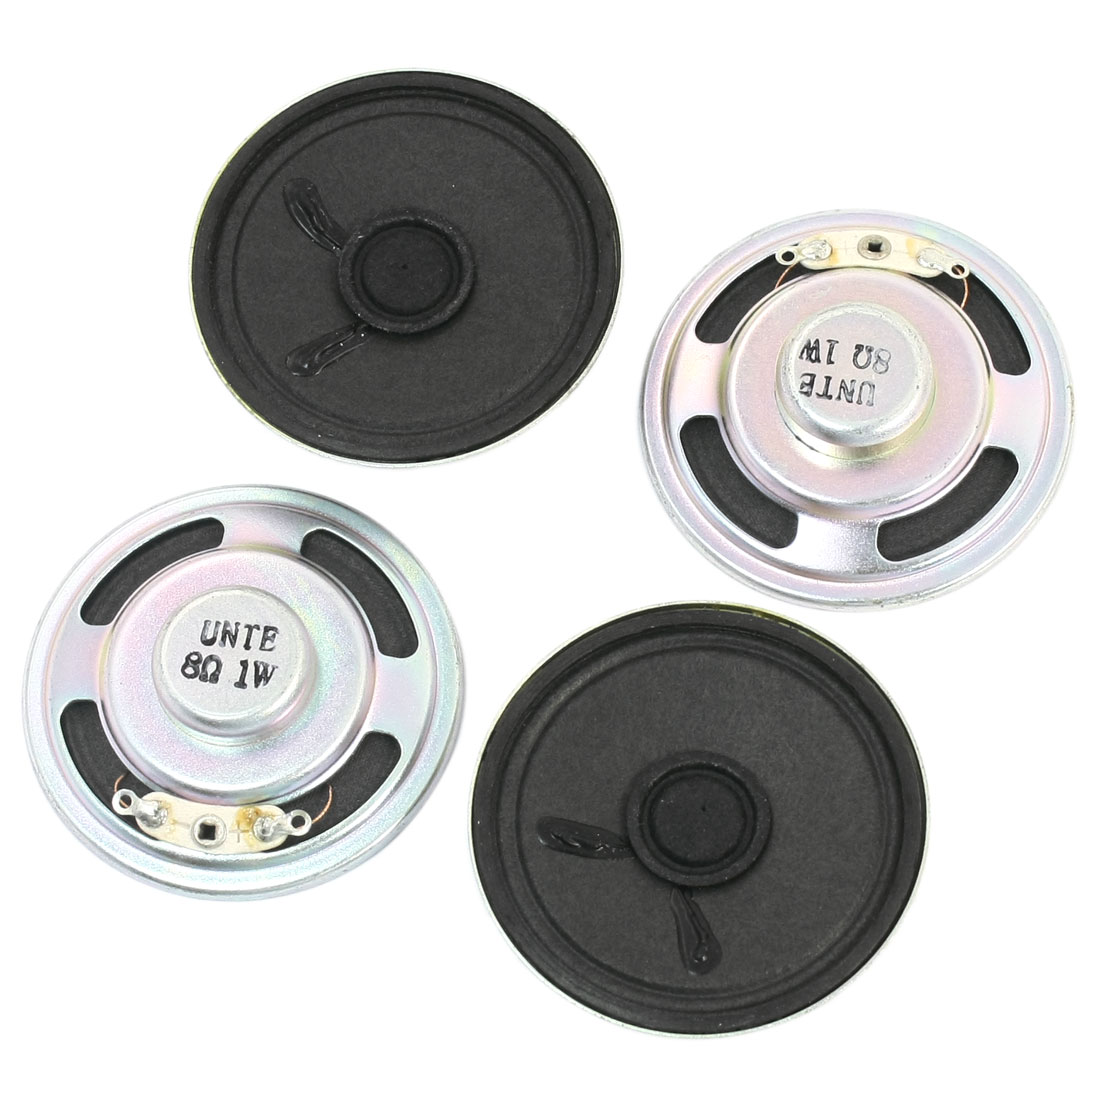 4Pcs 1W 8 Ohm 50mm Dia Round Metal Internal Magnet Electronic Toys Music Player Speaker Loudspeaker